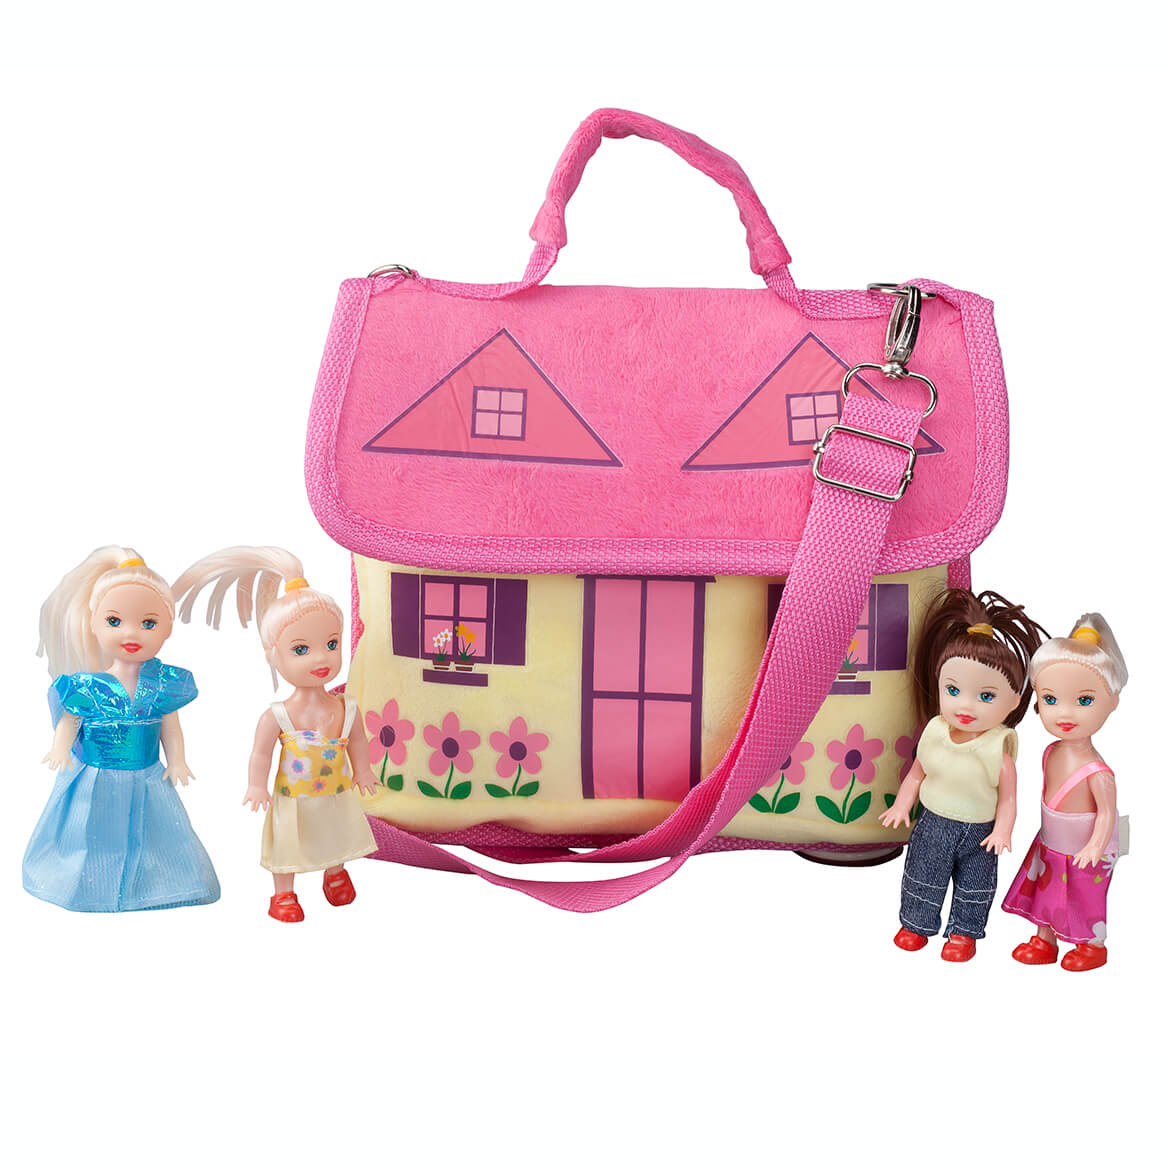 Purse with Dolls Set